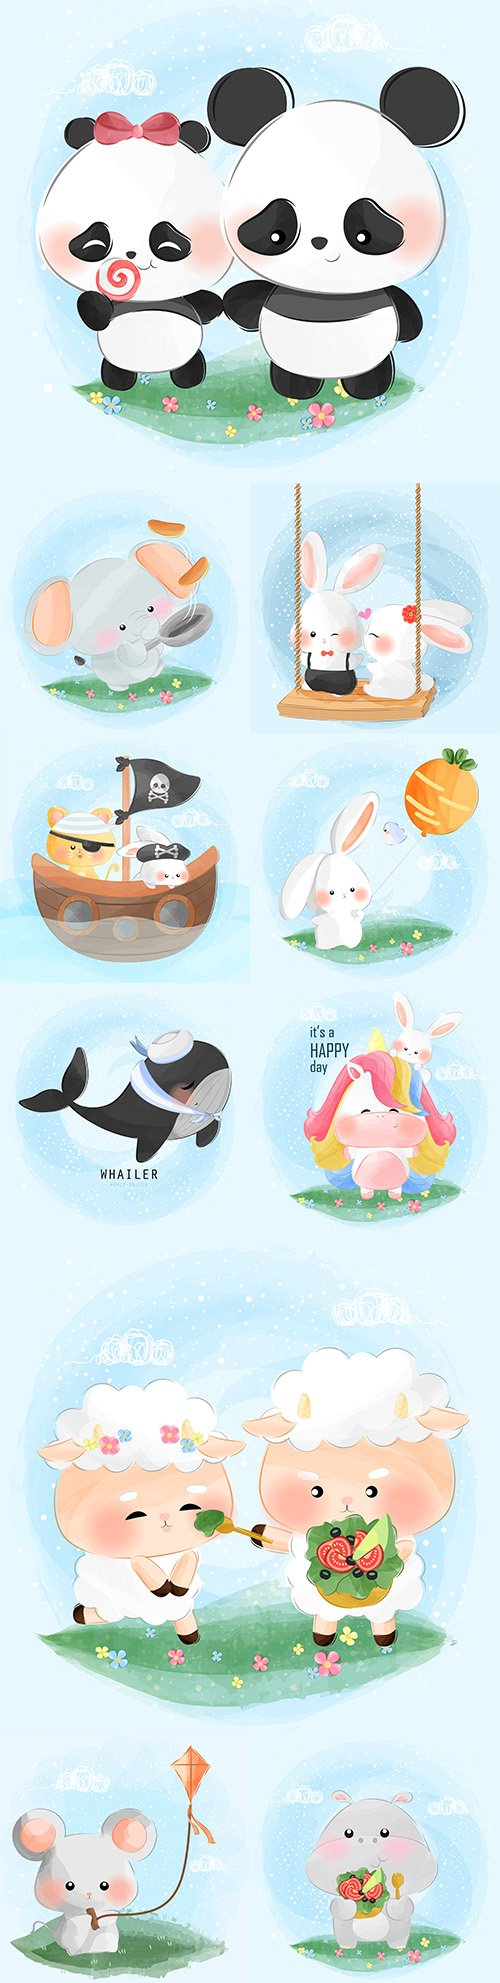 Funny animals flowers and balls illustrations 25